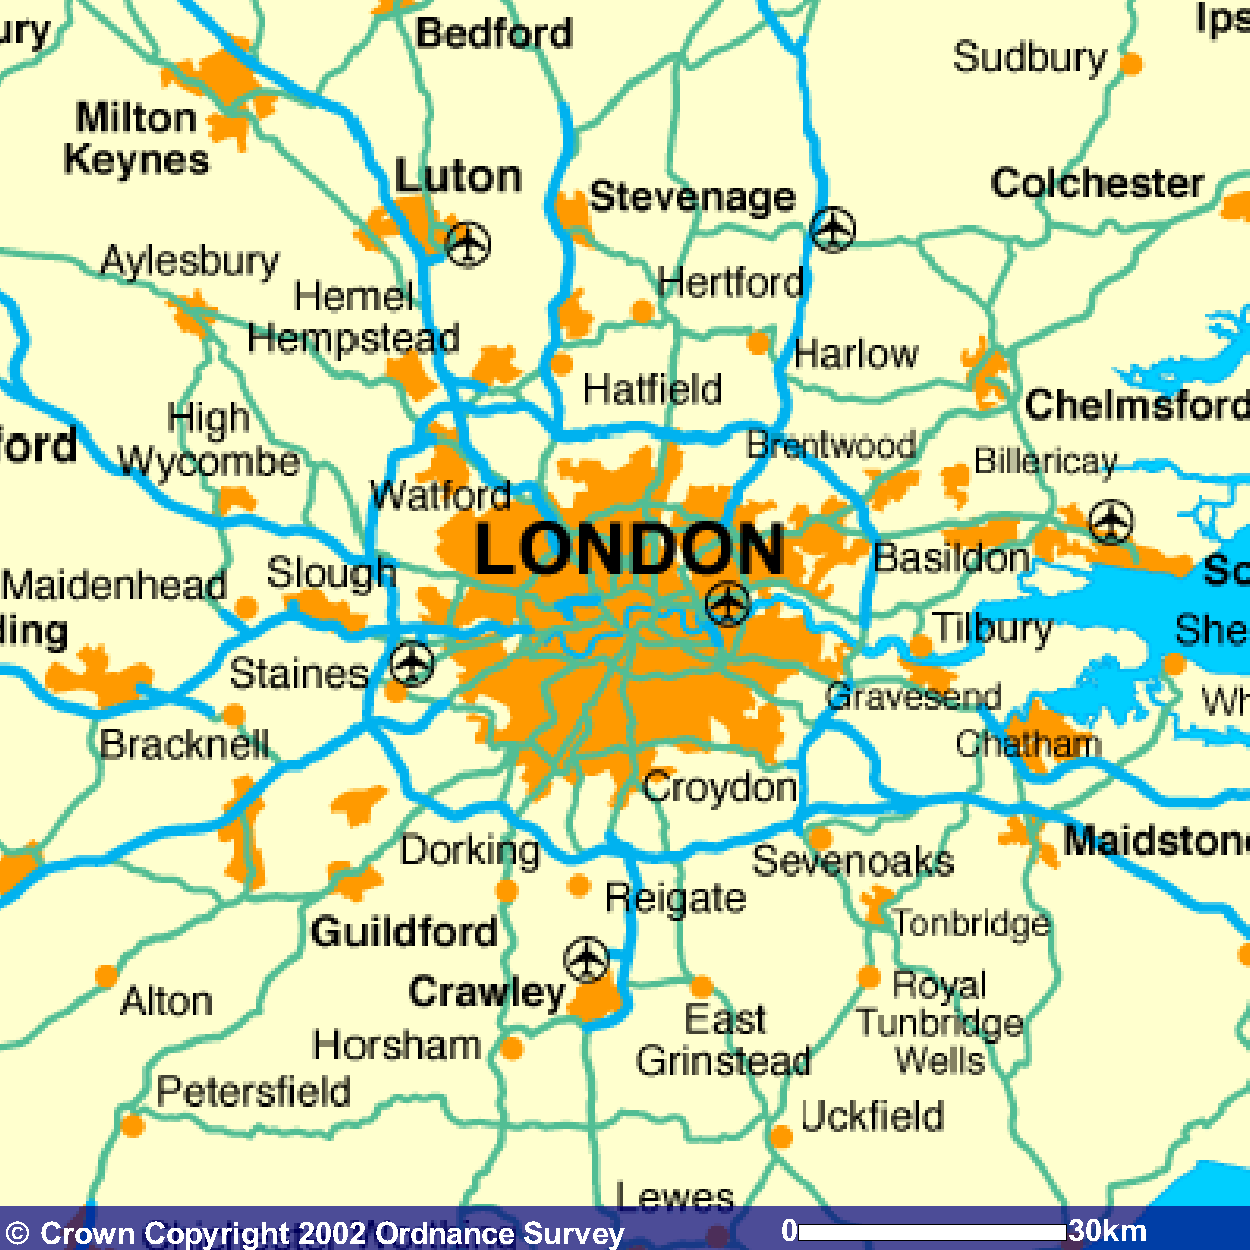 Map Of South East England Counties.Airport Transfer Journey Times And London Information Facts